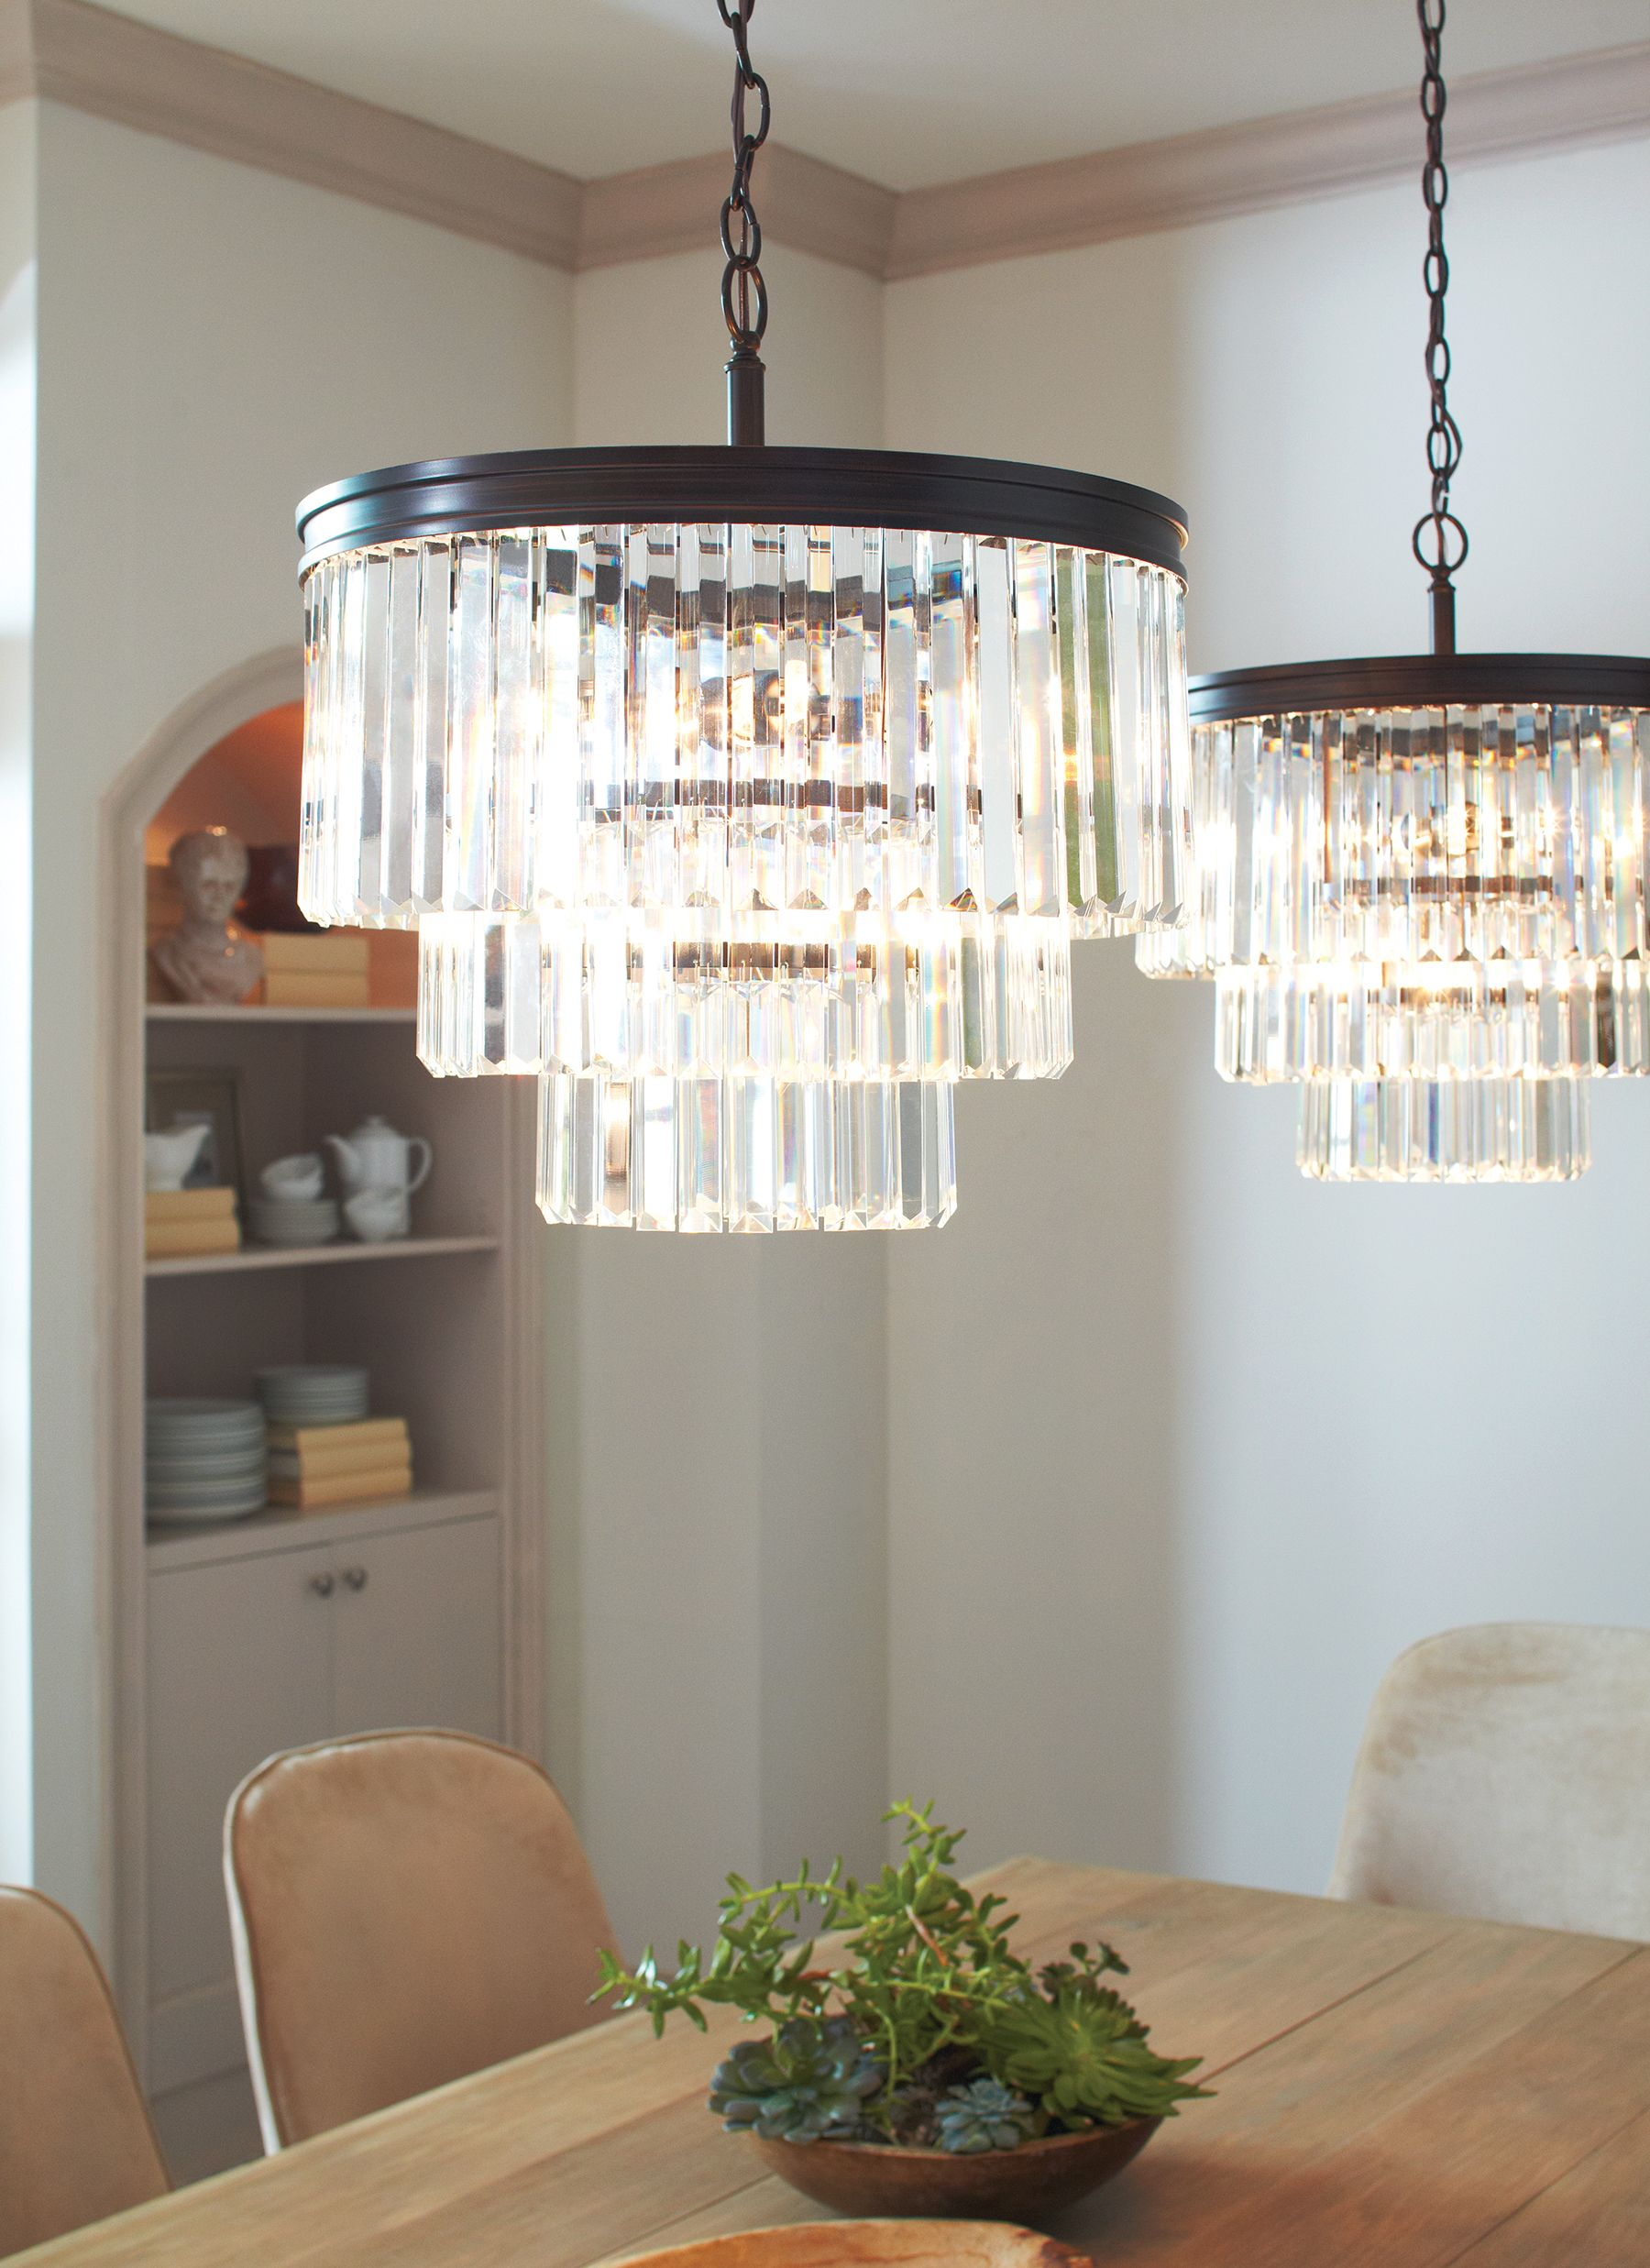 Try Adding 2 Chandeliers Over A Table Rather Than 1 Large Fixture